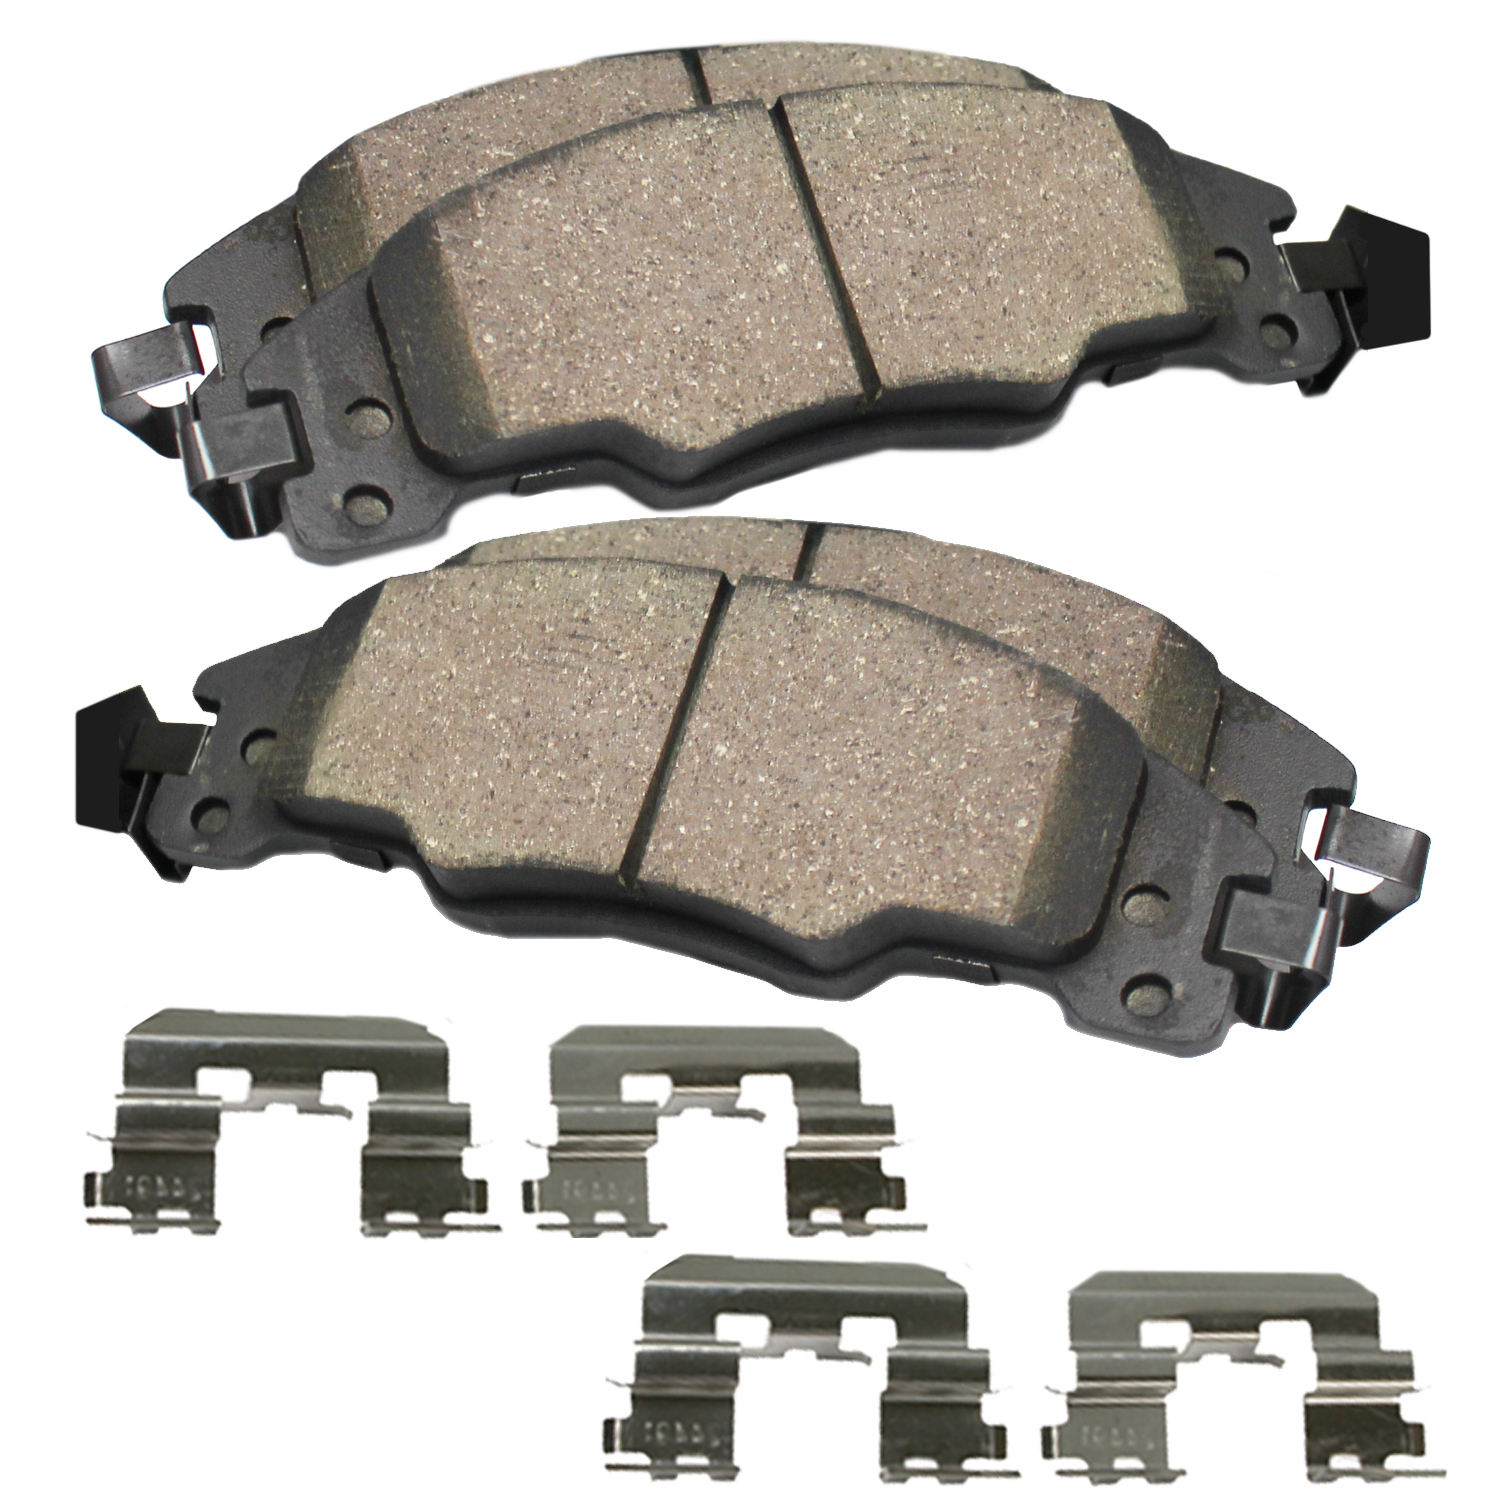 Front Ceramic Brake Pads - Pacifica Models